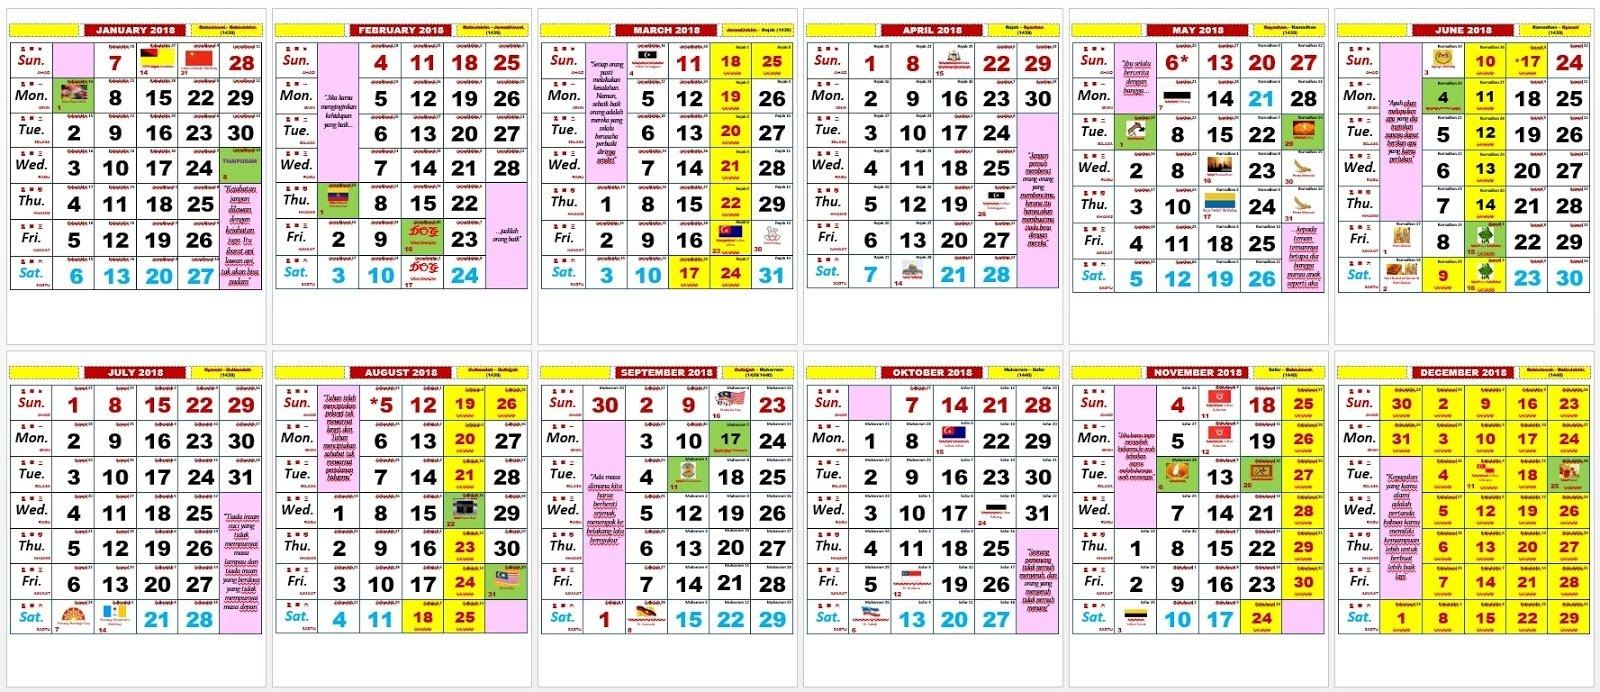 2018 Kalendar | 2019 2018 Calendar Printable With Holidays List Calendar 2019 Kuda Pdf